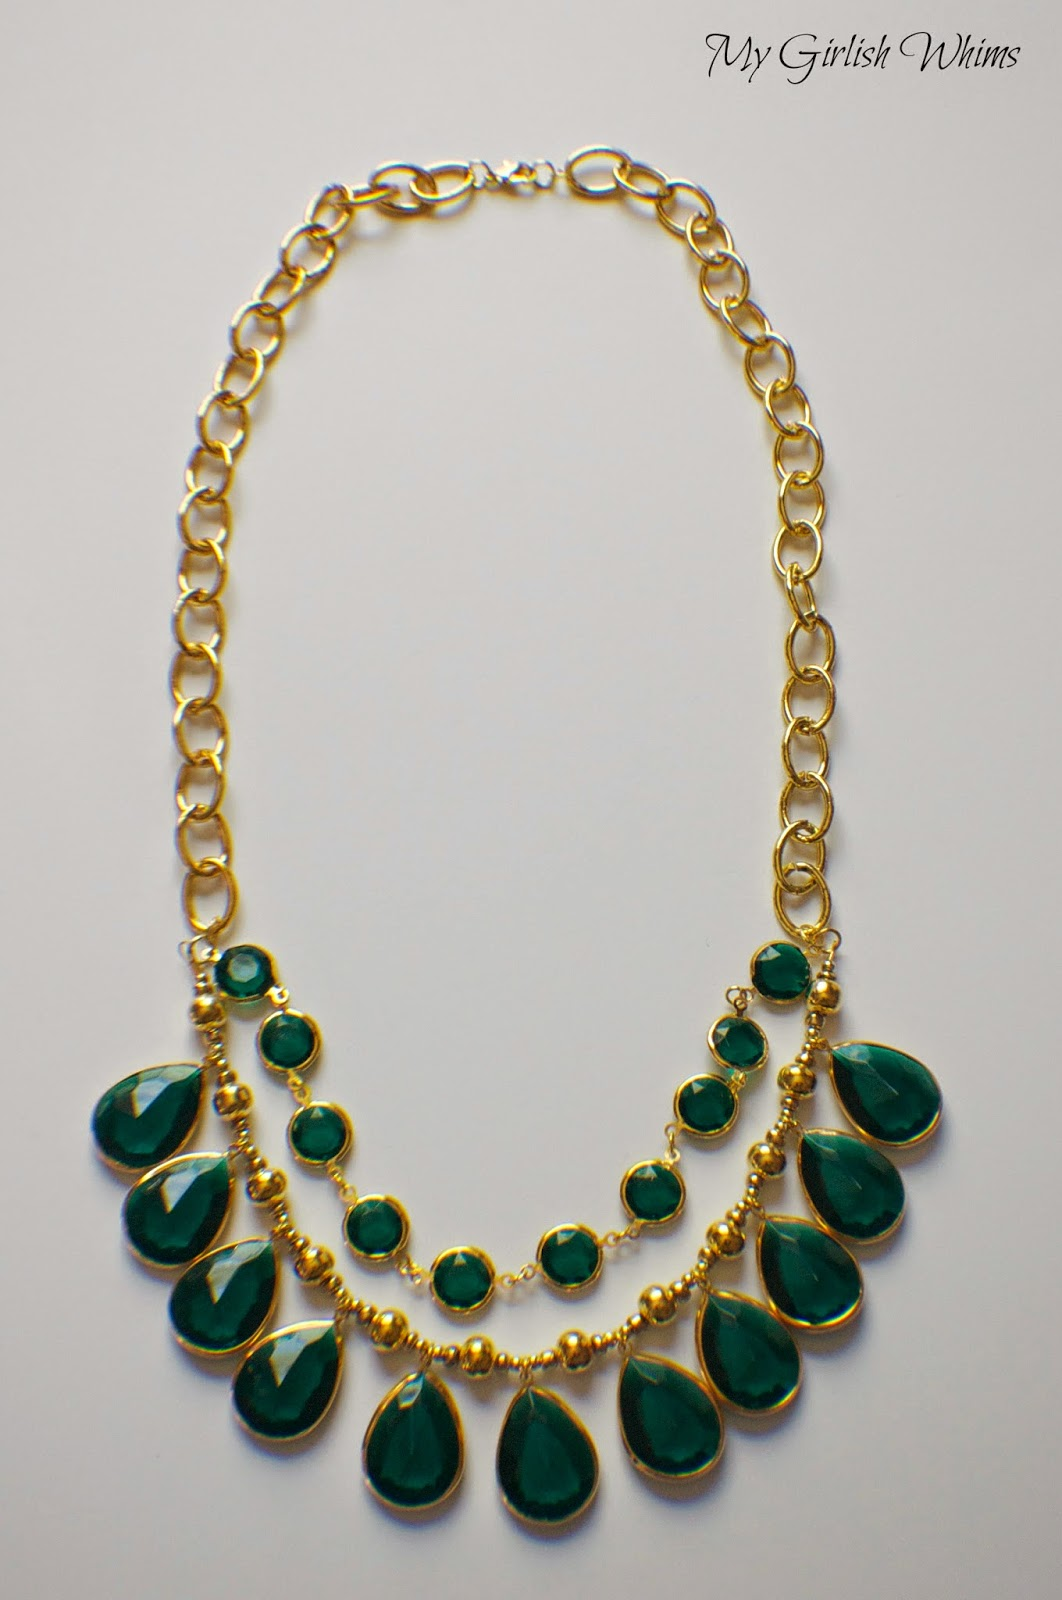 DIY Emerald Charm Statement Necklace - My Girlish Whims